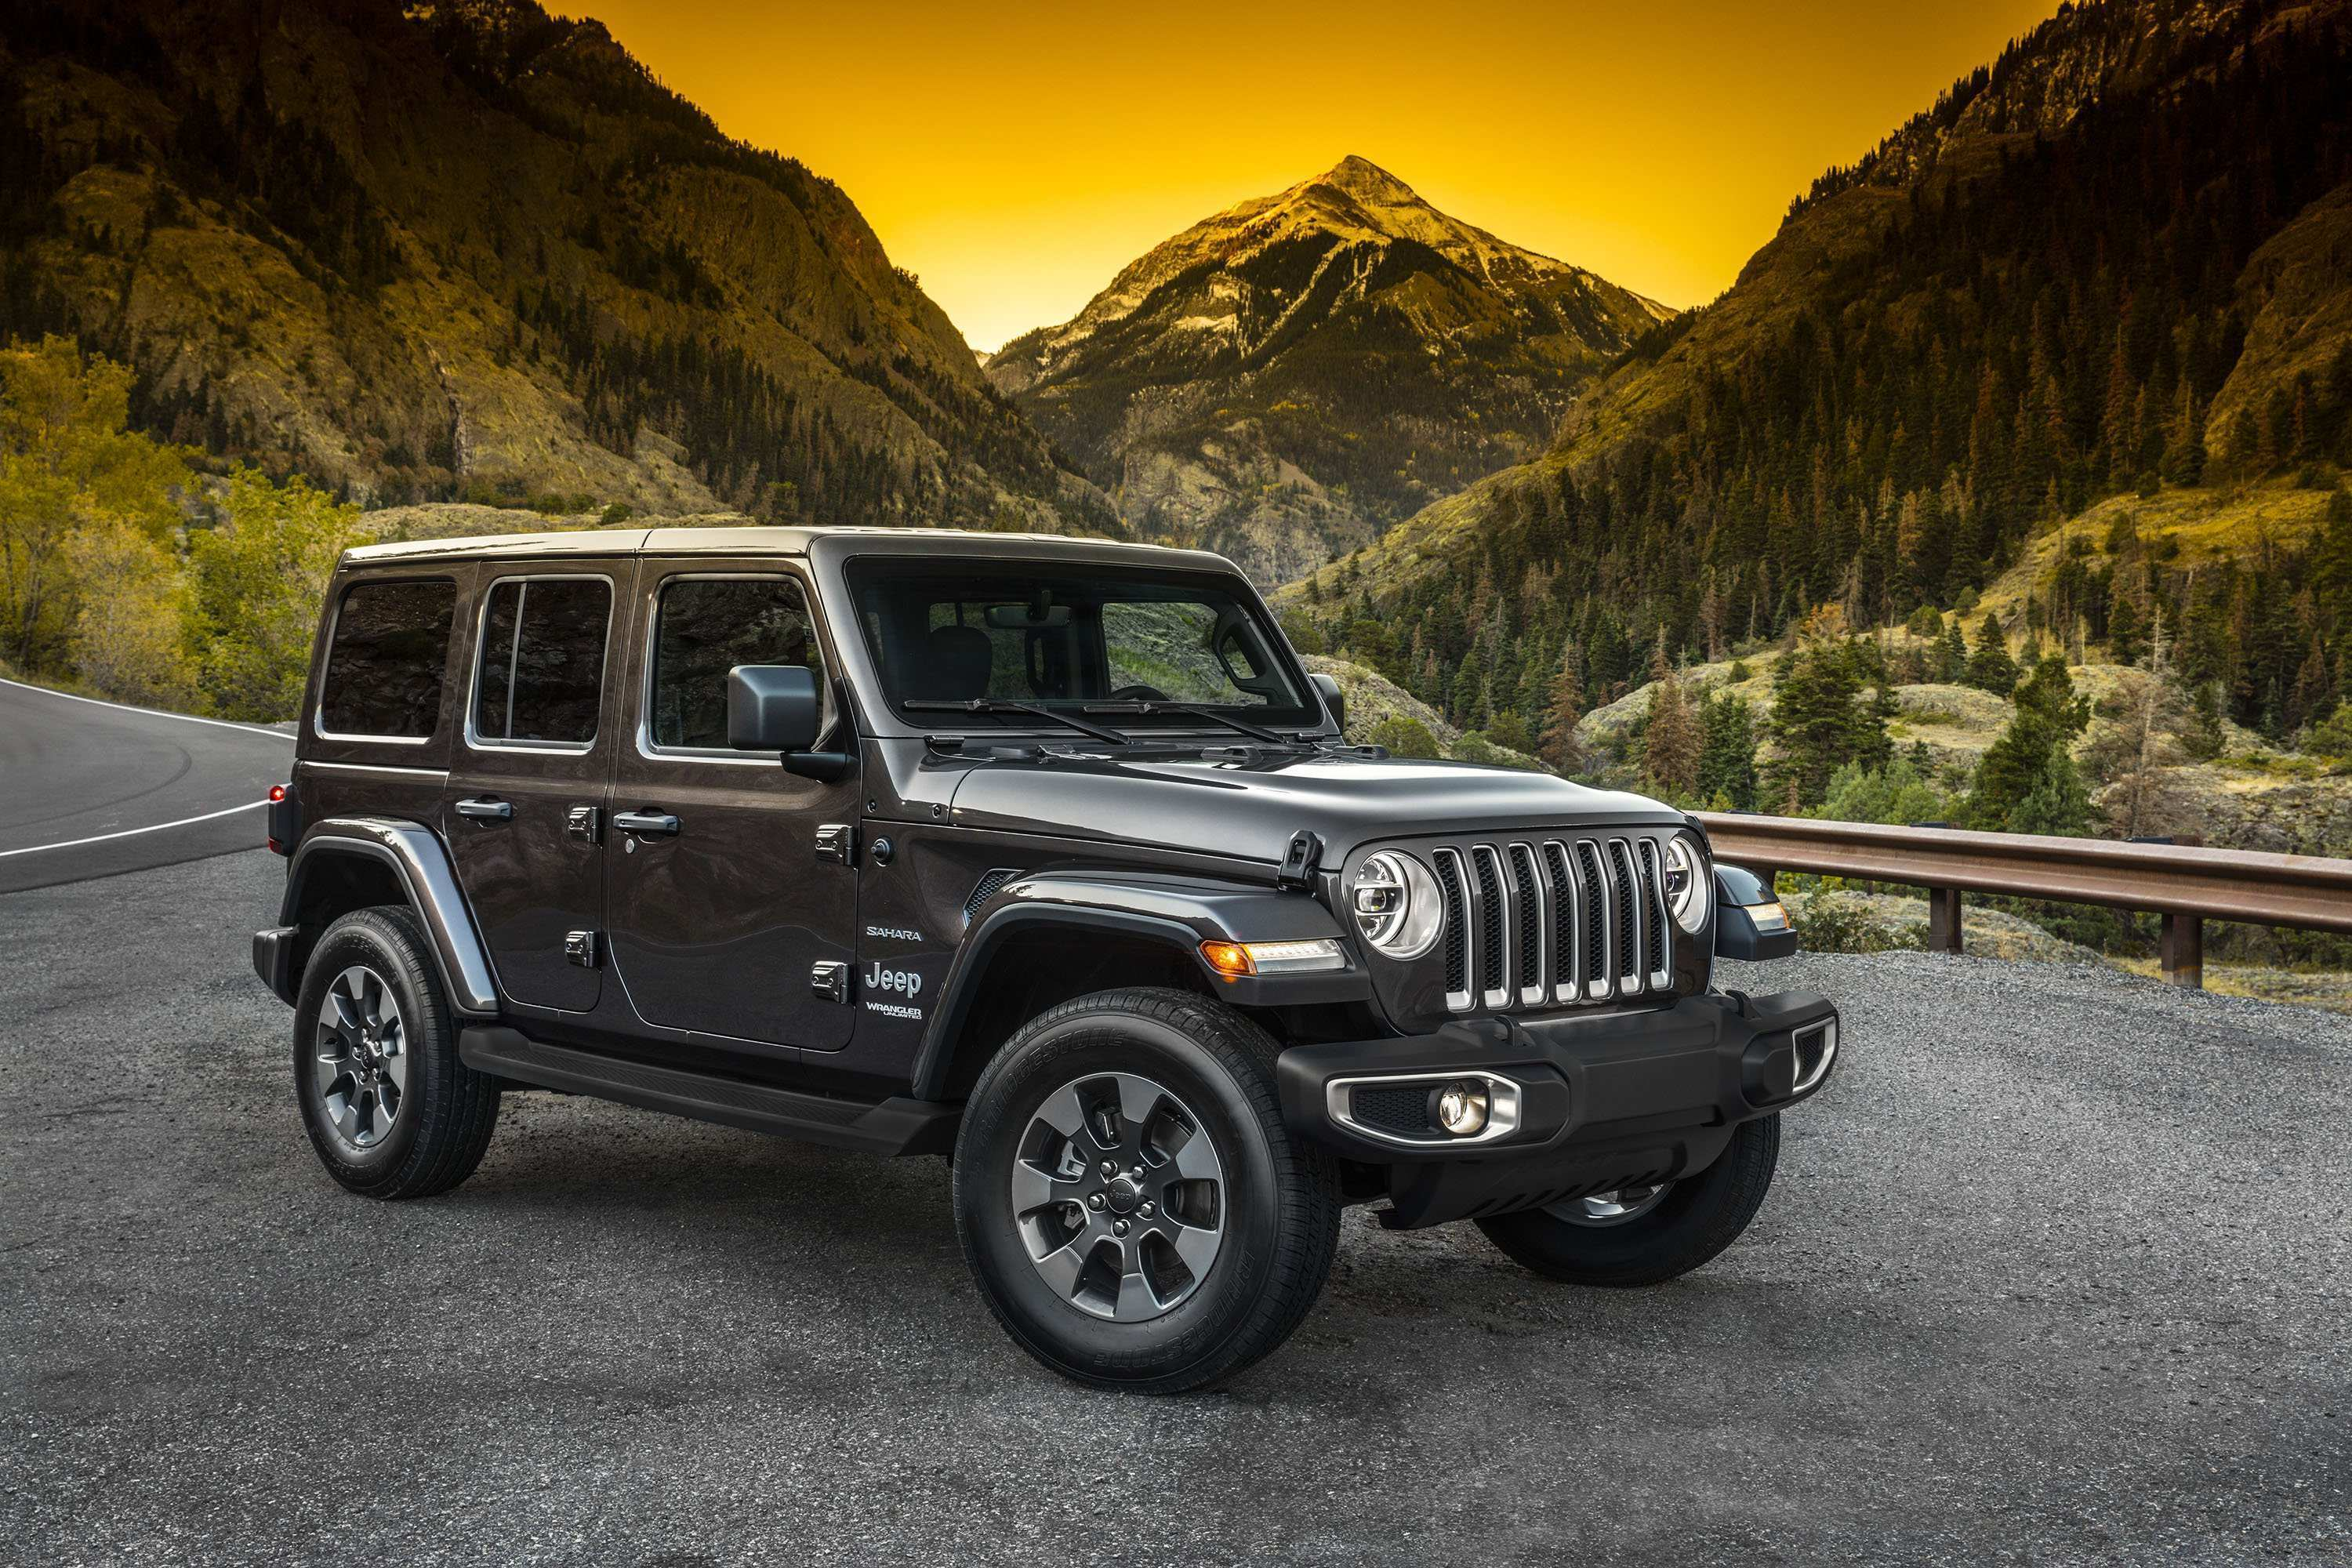 47 New 2020 Jeep Wrangler Unlimited Engine